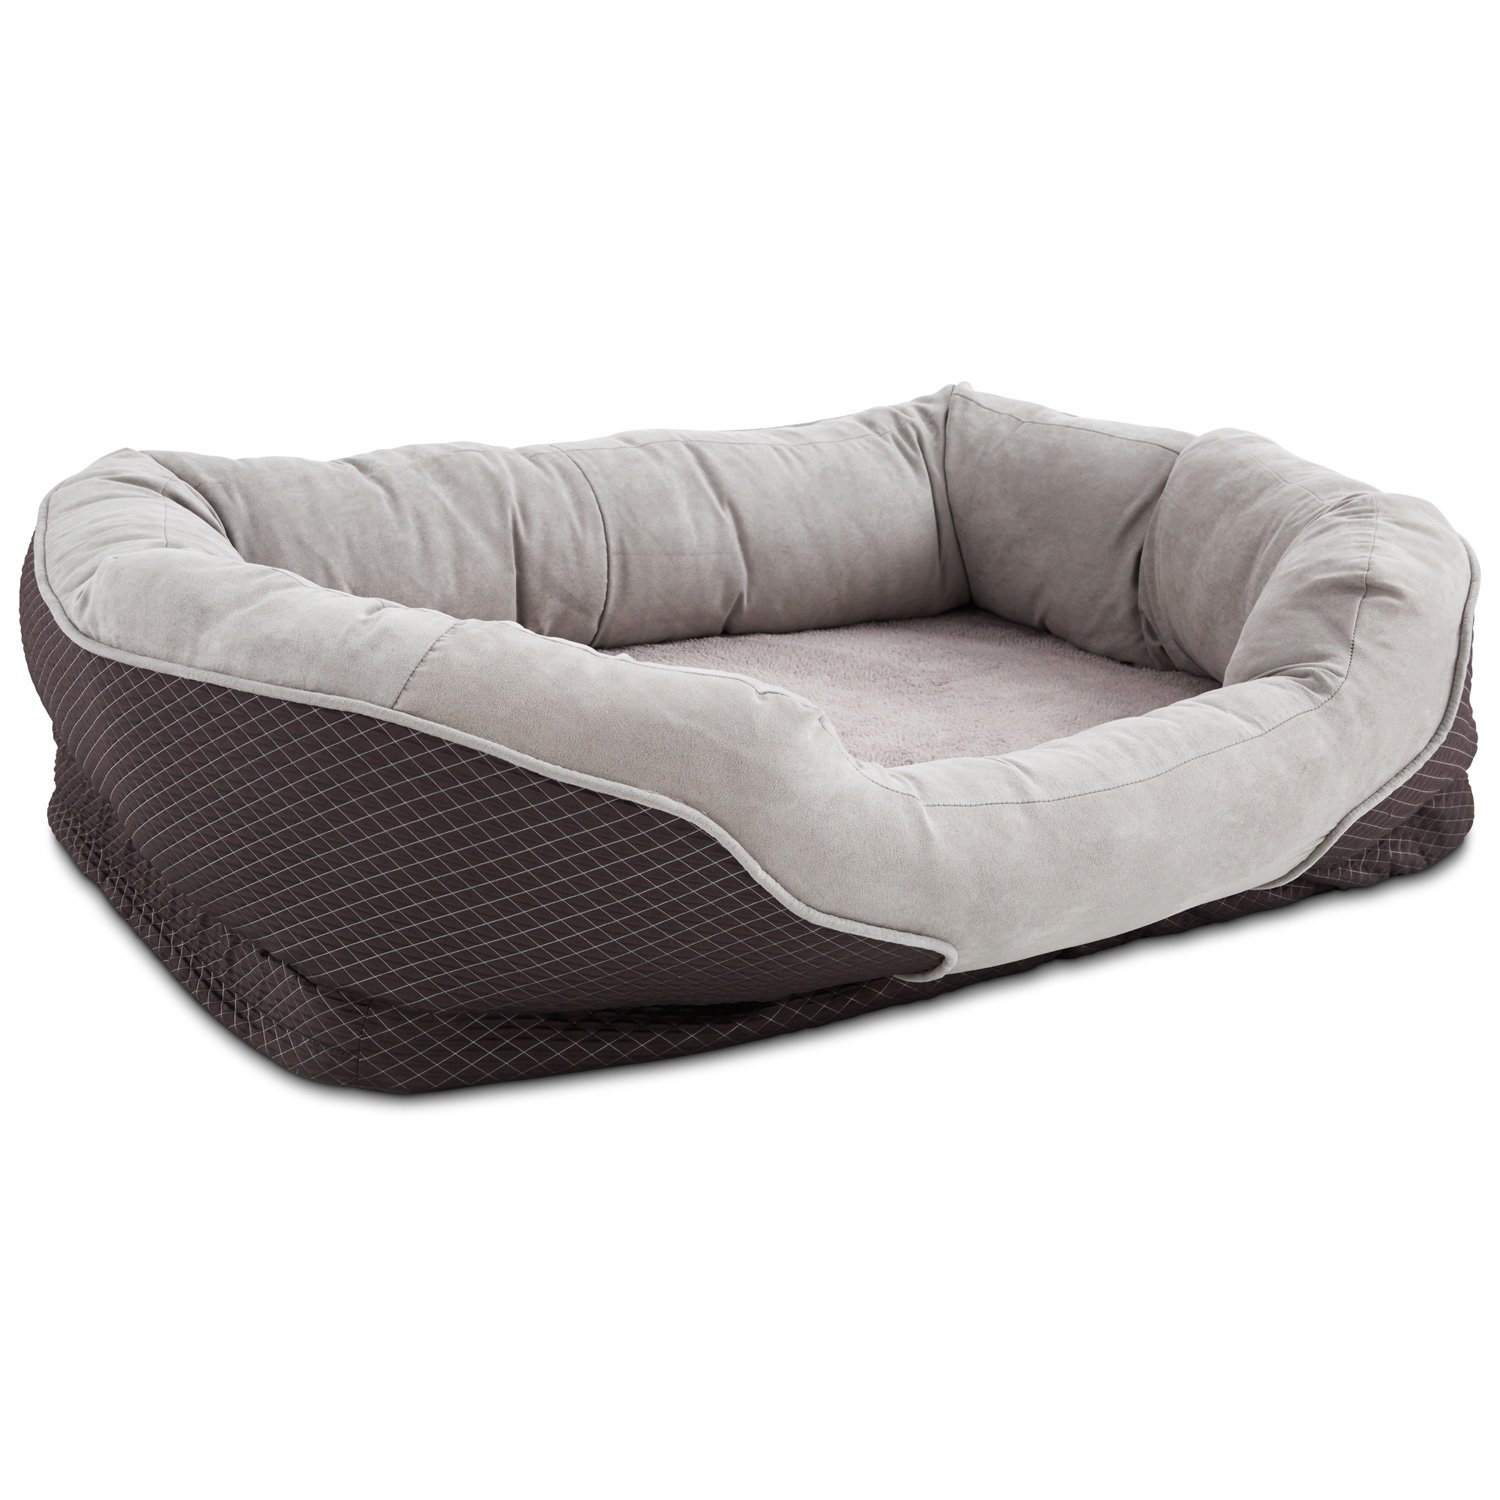 Dog Beds For Two Dogs Uk